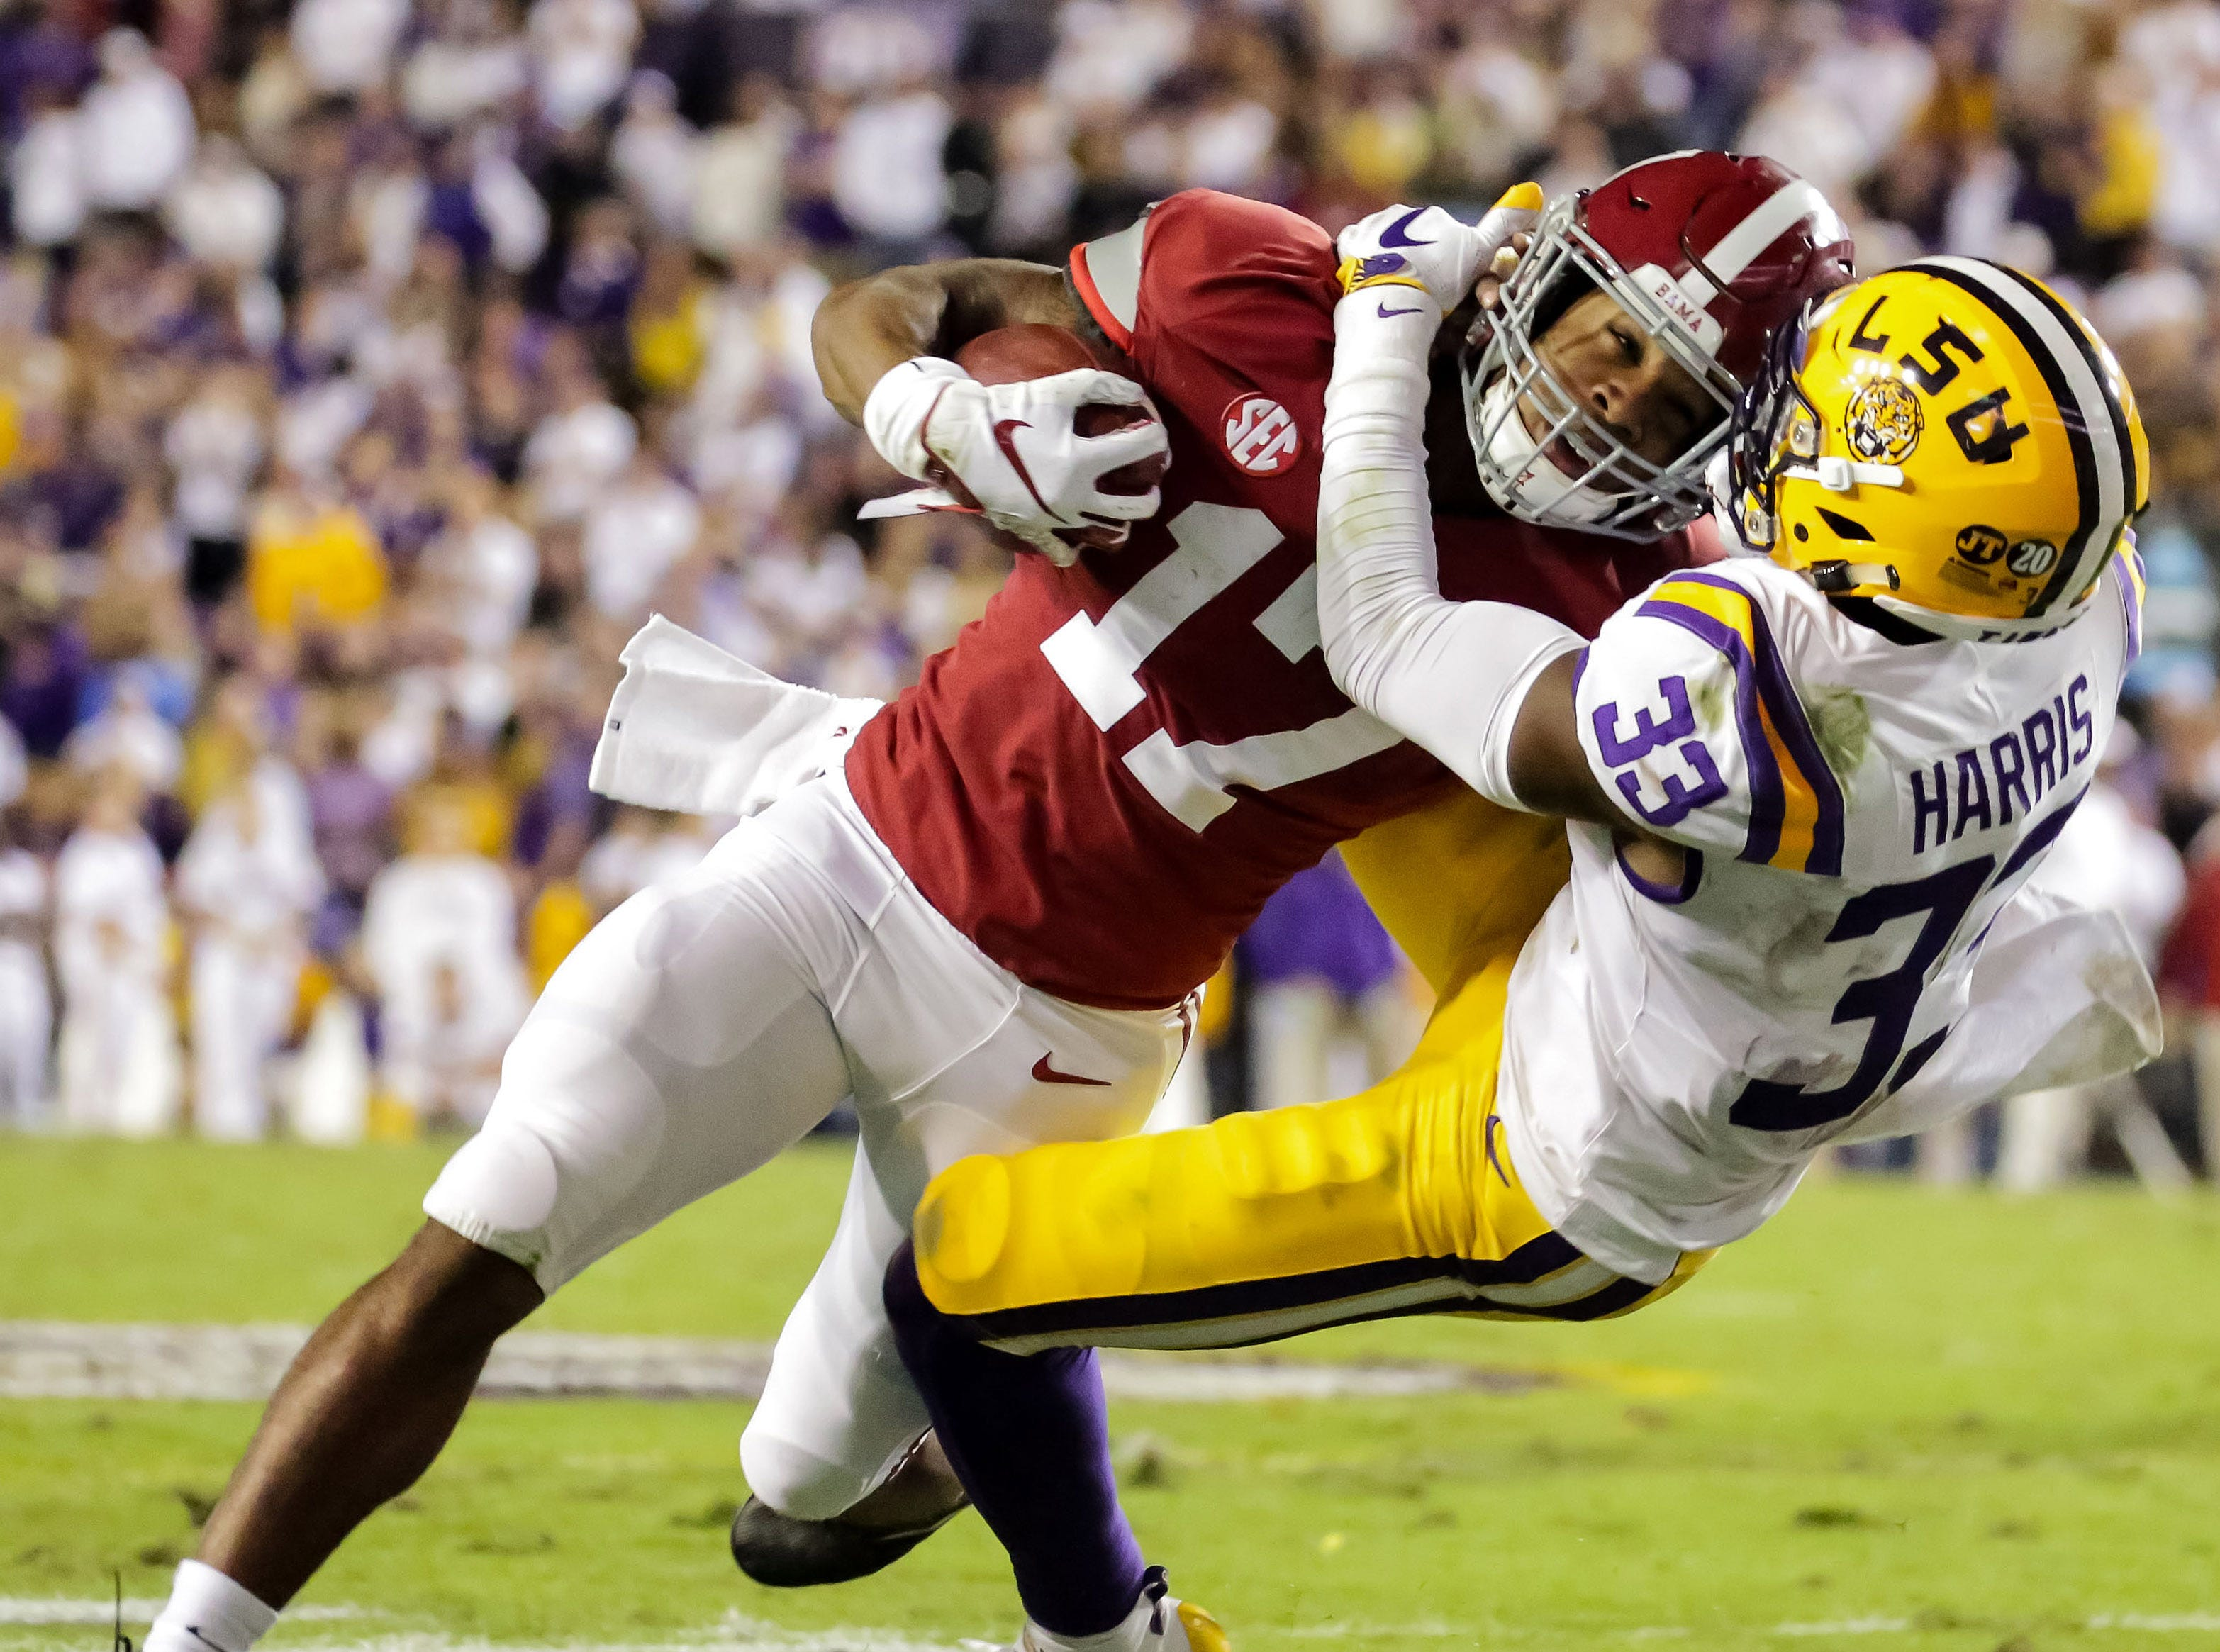 Alabama Crimson Tide wide receiver Jaylen Waddle (17) carries the ball as LSU Tigers safety Todd Harris Jr. (33) tackles during the second quarter at Tiger Stadium.